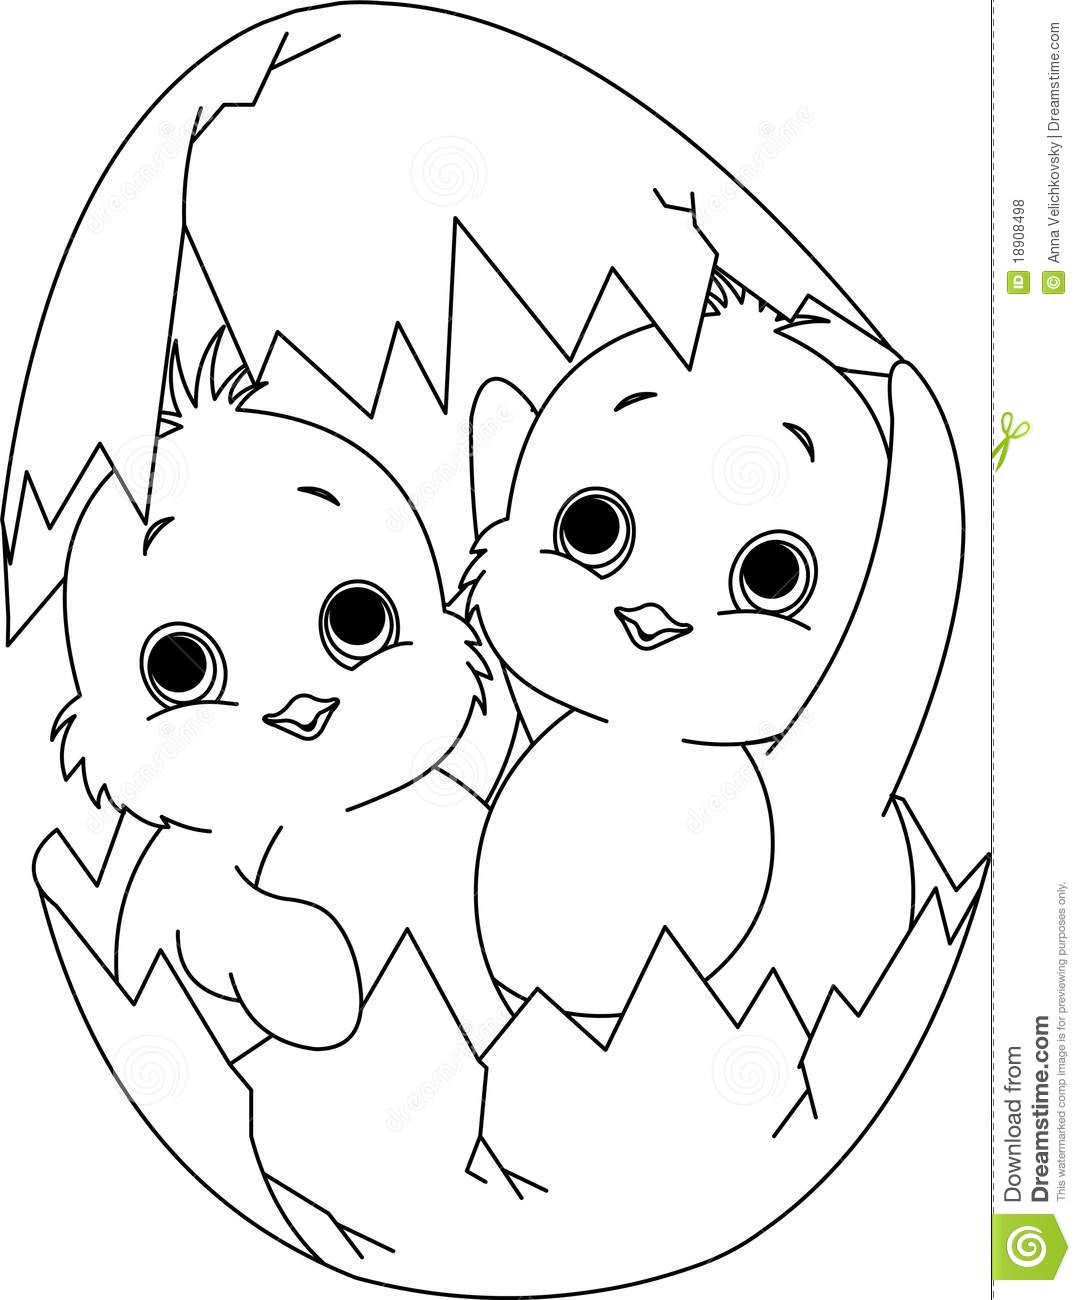 two easter chickens in the egg coloring page download from over 54 million high - Chick Coloring Page